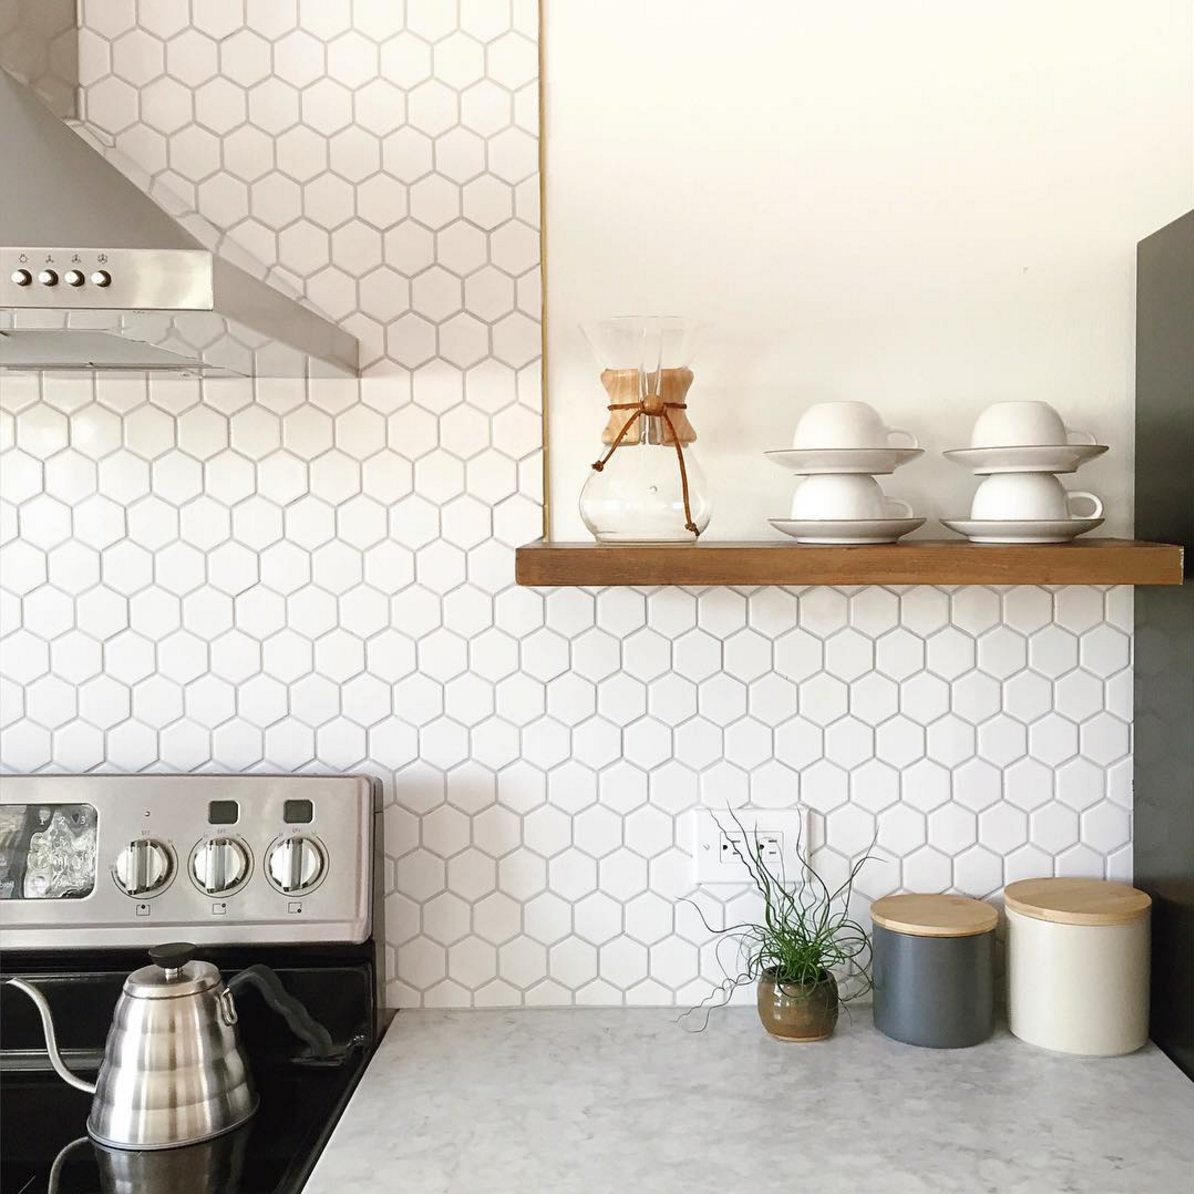 Honeycomb Tile Kitchen MERCURY MOSAICS Pinterest Honeycombs - Honeycomb tile bathroom